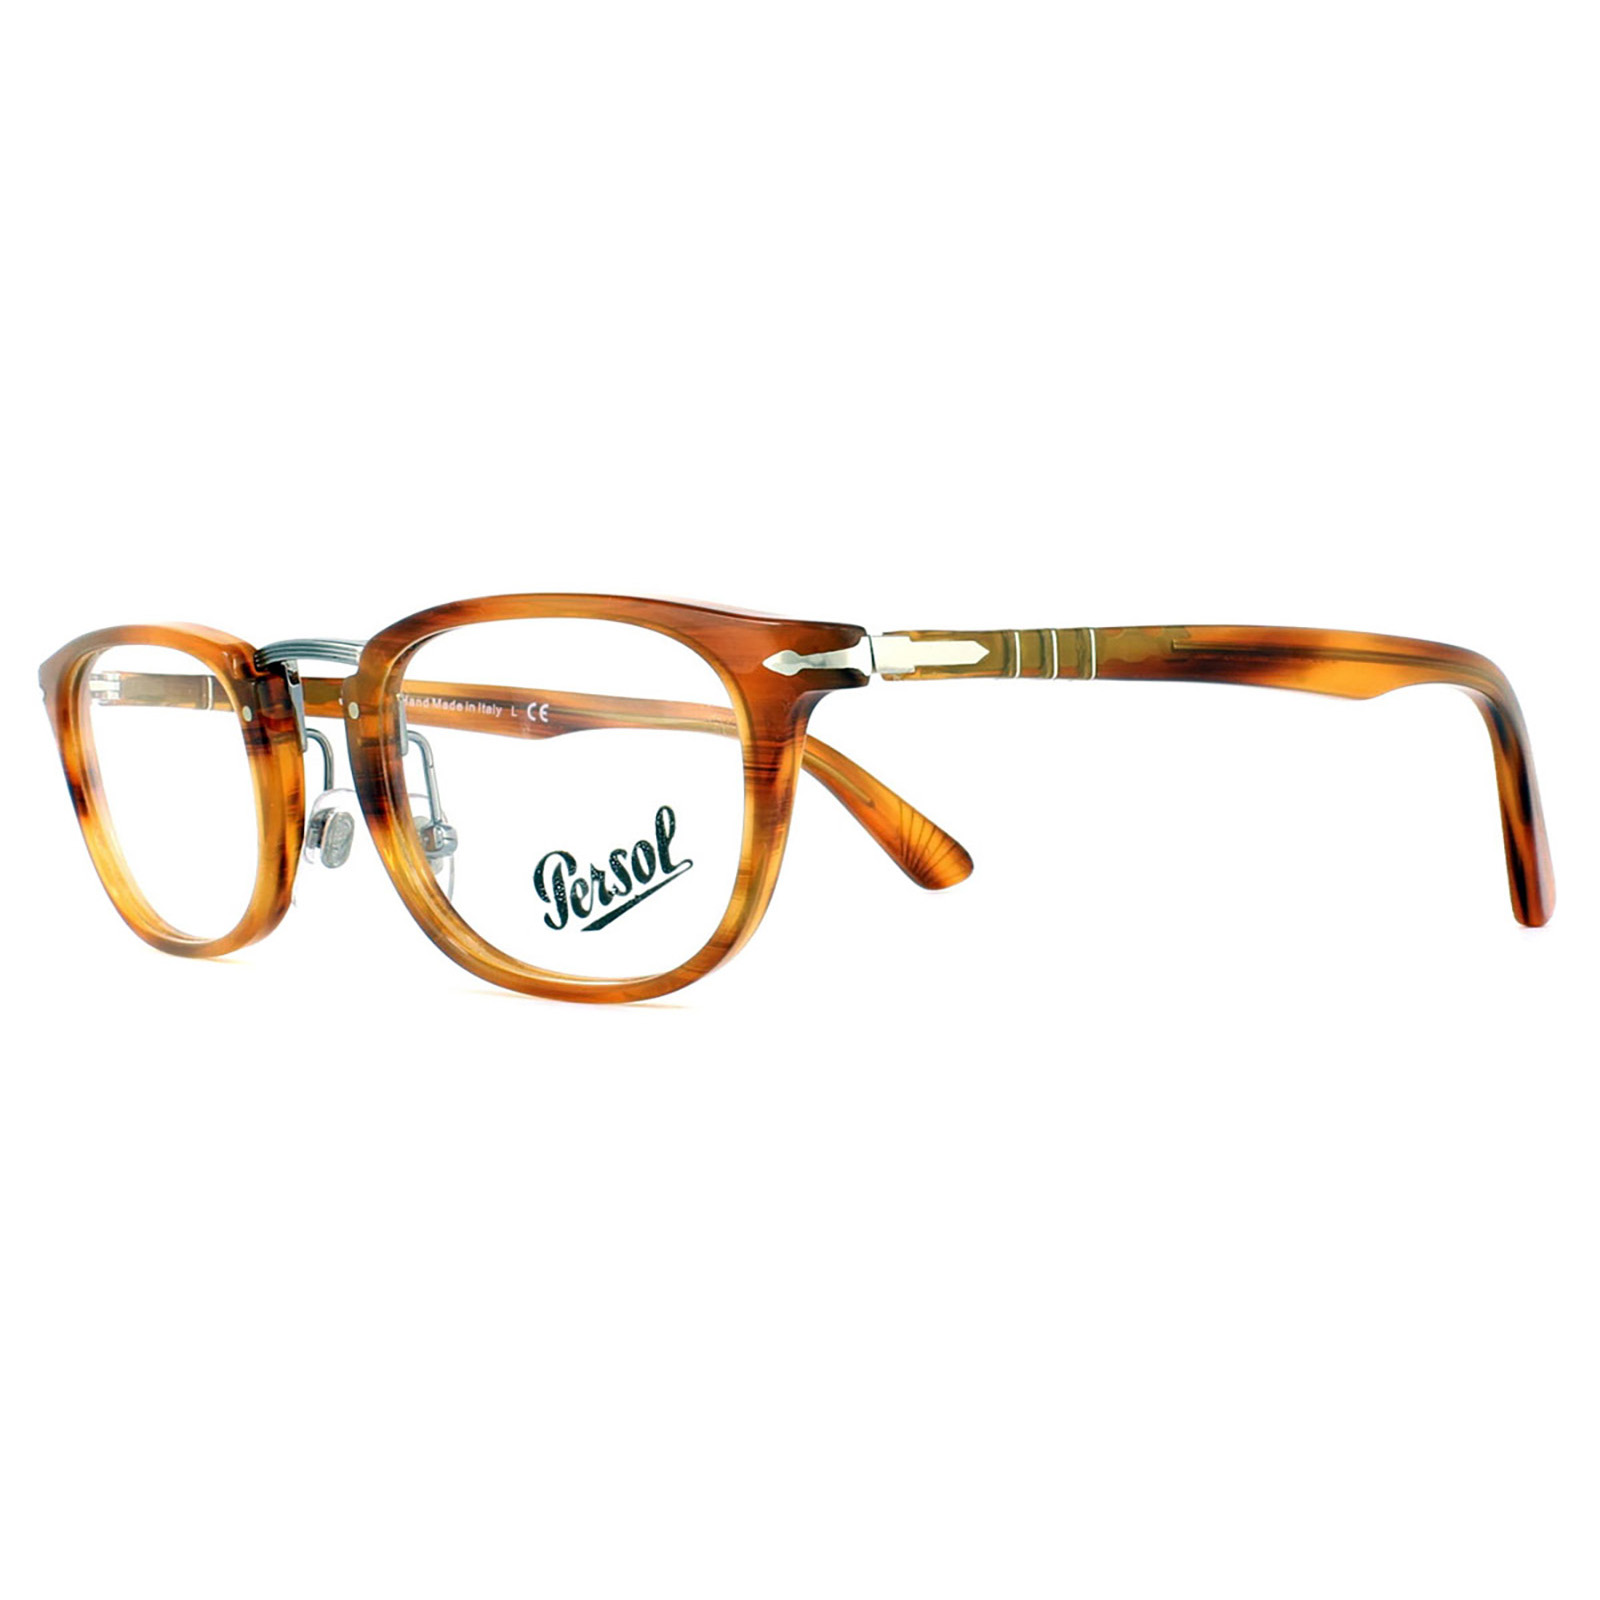 Cheap Persol 3126V Glasses Frames - Discounted Sunglasses